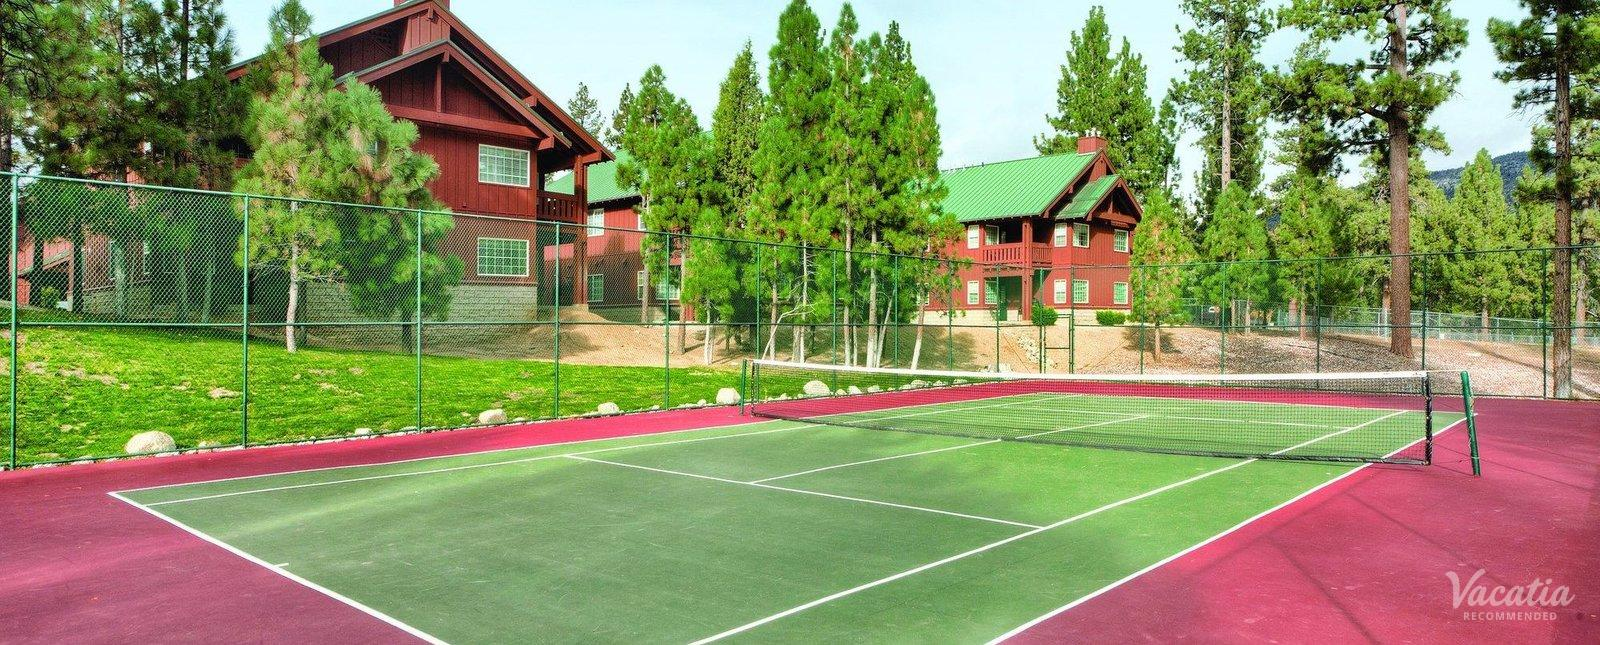 WorldMark Big Bear Resort Tennis Courts